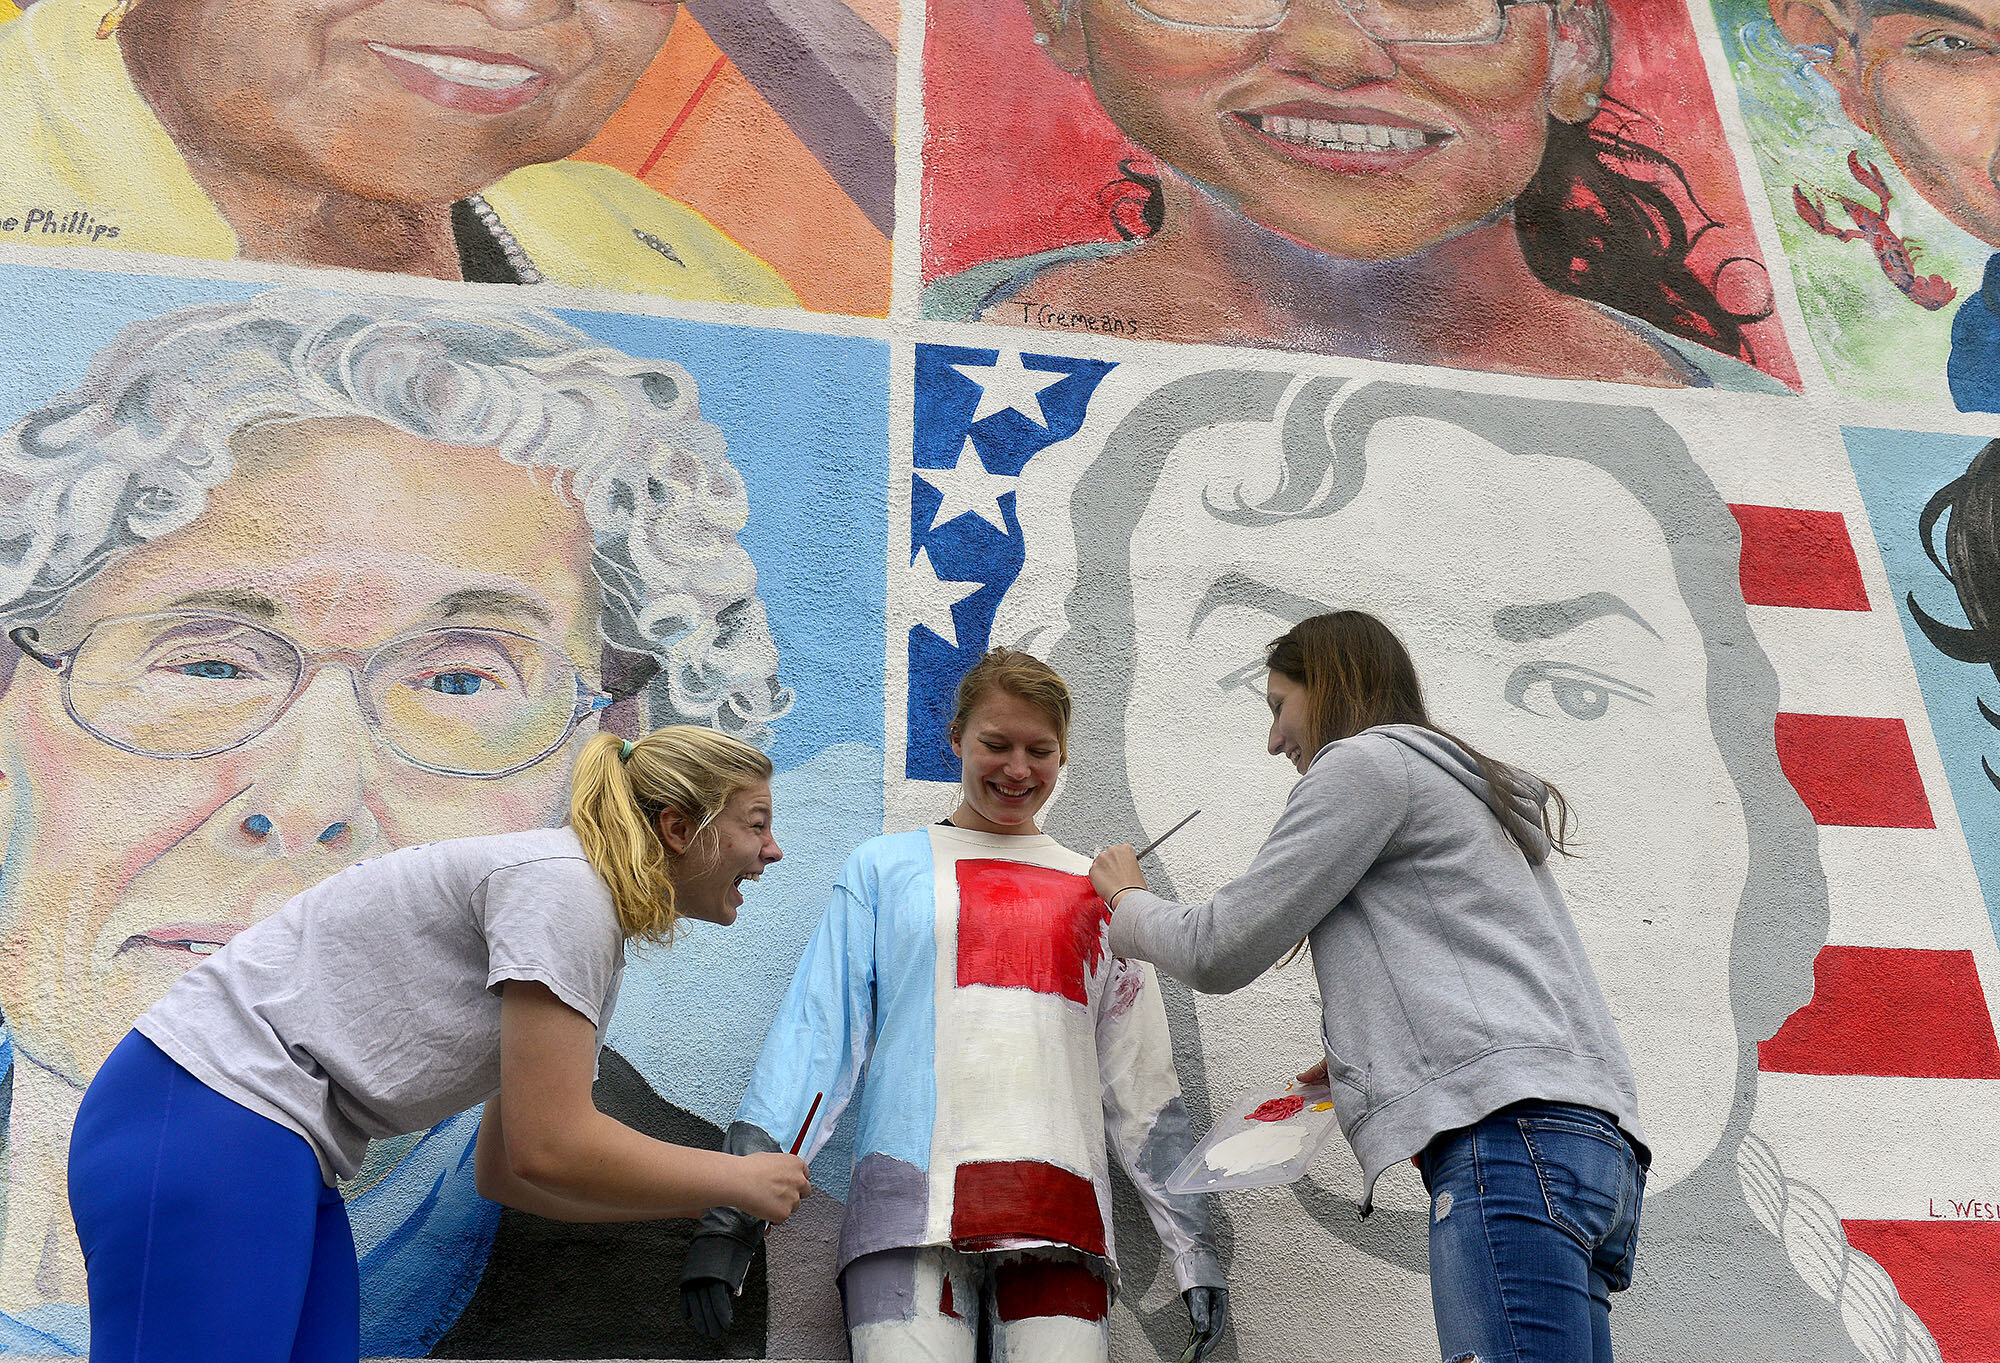 """Connecticut College sophomores Emily Ehler, right, and Emily Senatore, left, laugh as they paint classmate Caitlyn Teare, center, into the """"One Place Many Cultures"""" mural on Friday, May 12, 2017, as part of their final for a color theory class """"Decoding Color"""" in downtown New London. For their final project class members worked in teams to find an urban space and camouflage a classmate into the environment. (The Day)"""